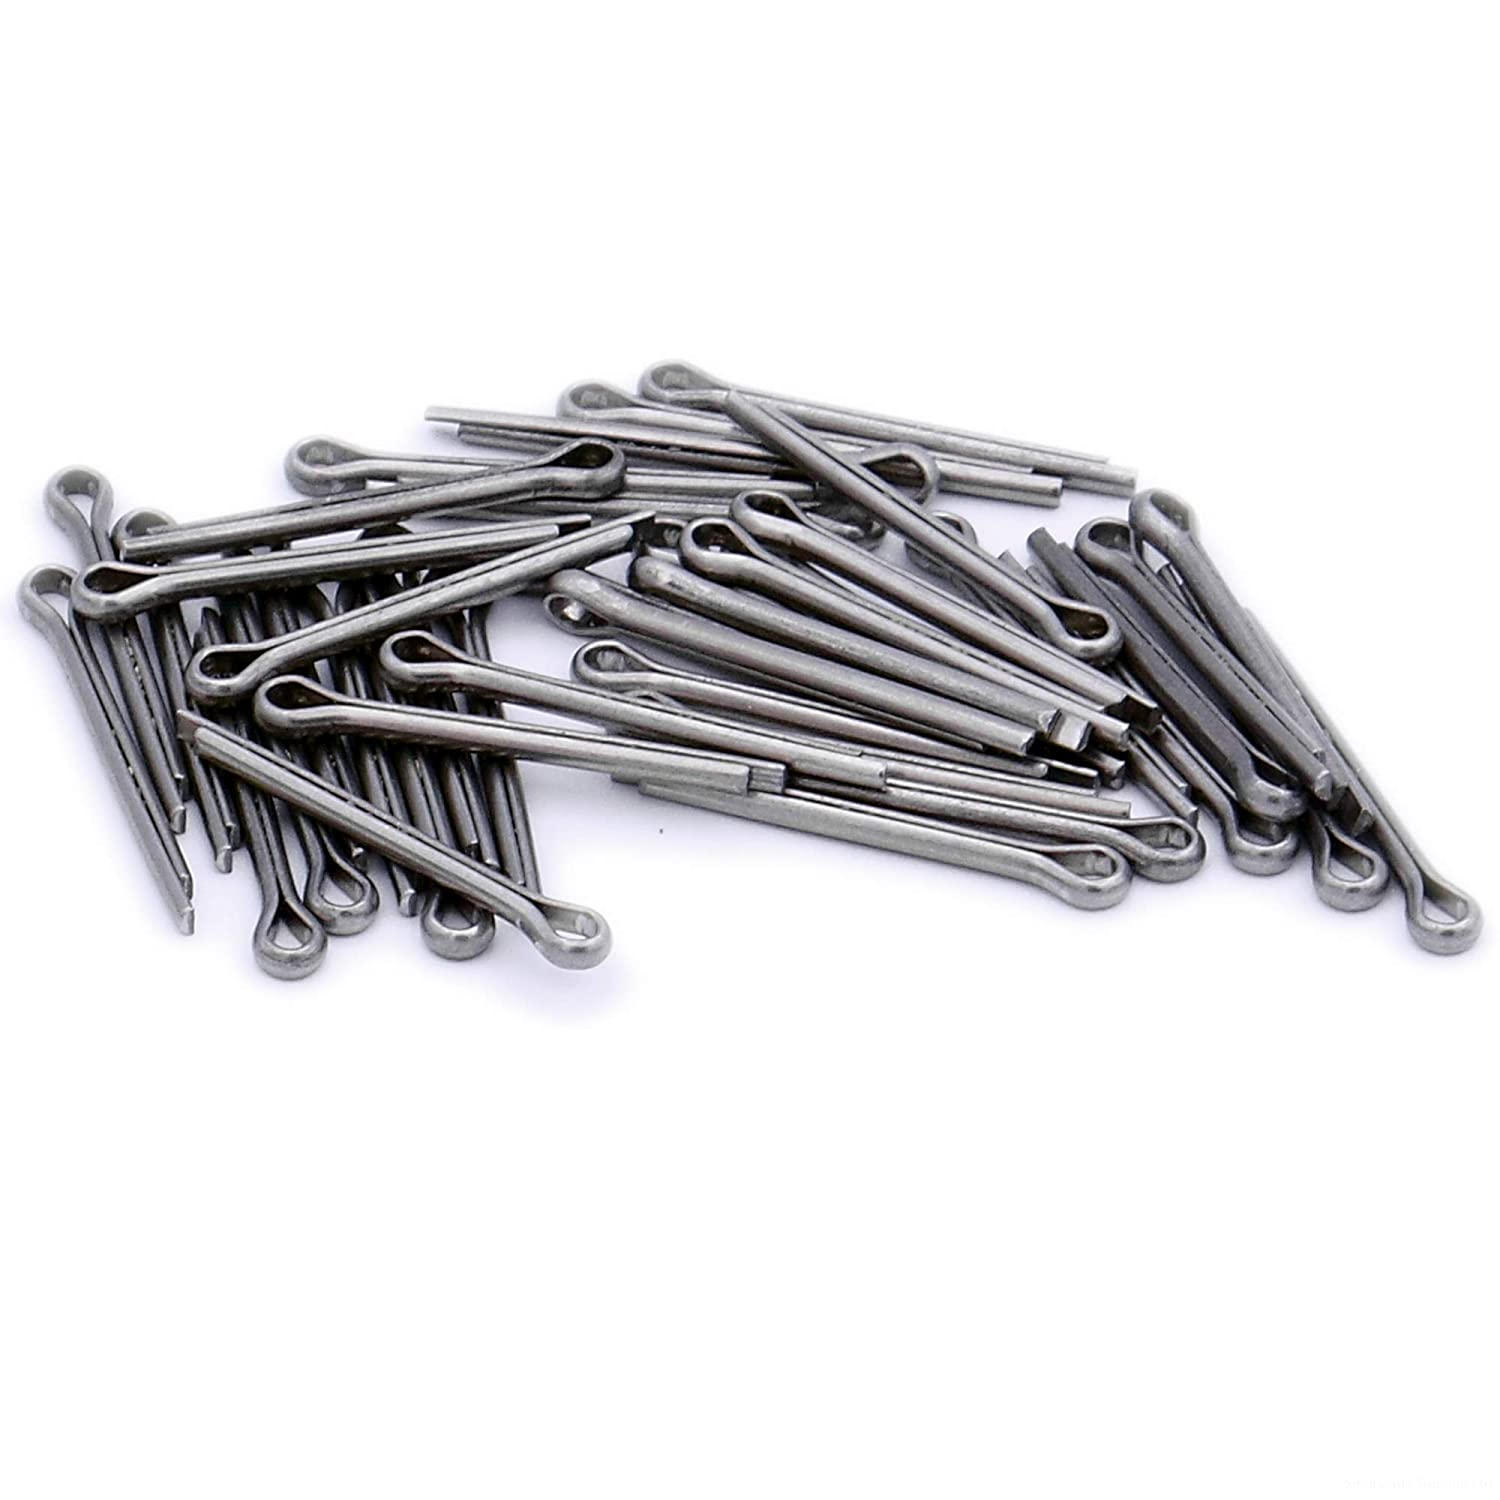 M2.5 2.5mm x 22mm A2 Stainless Steel Pack of 40 Split Cotter Pin